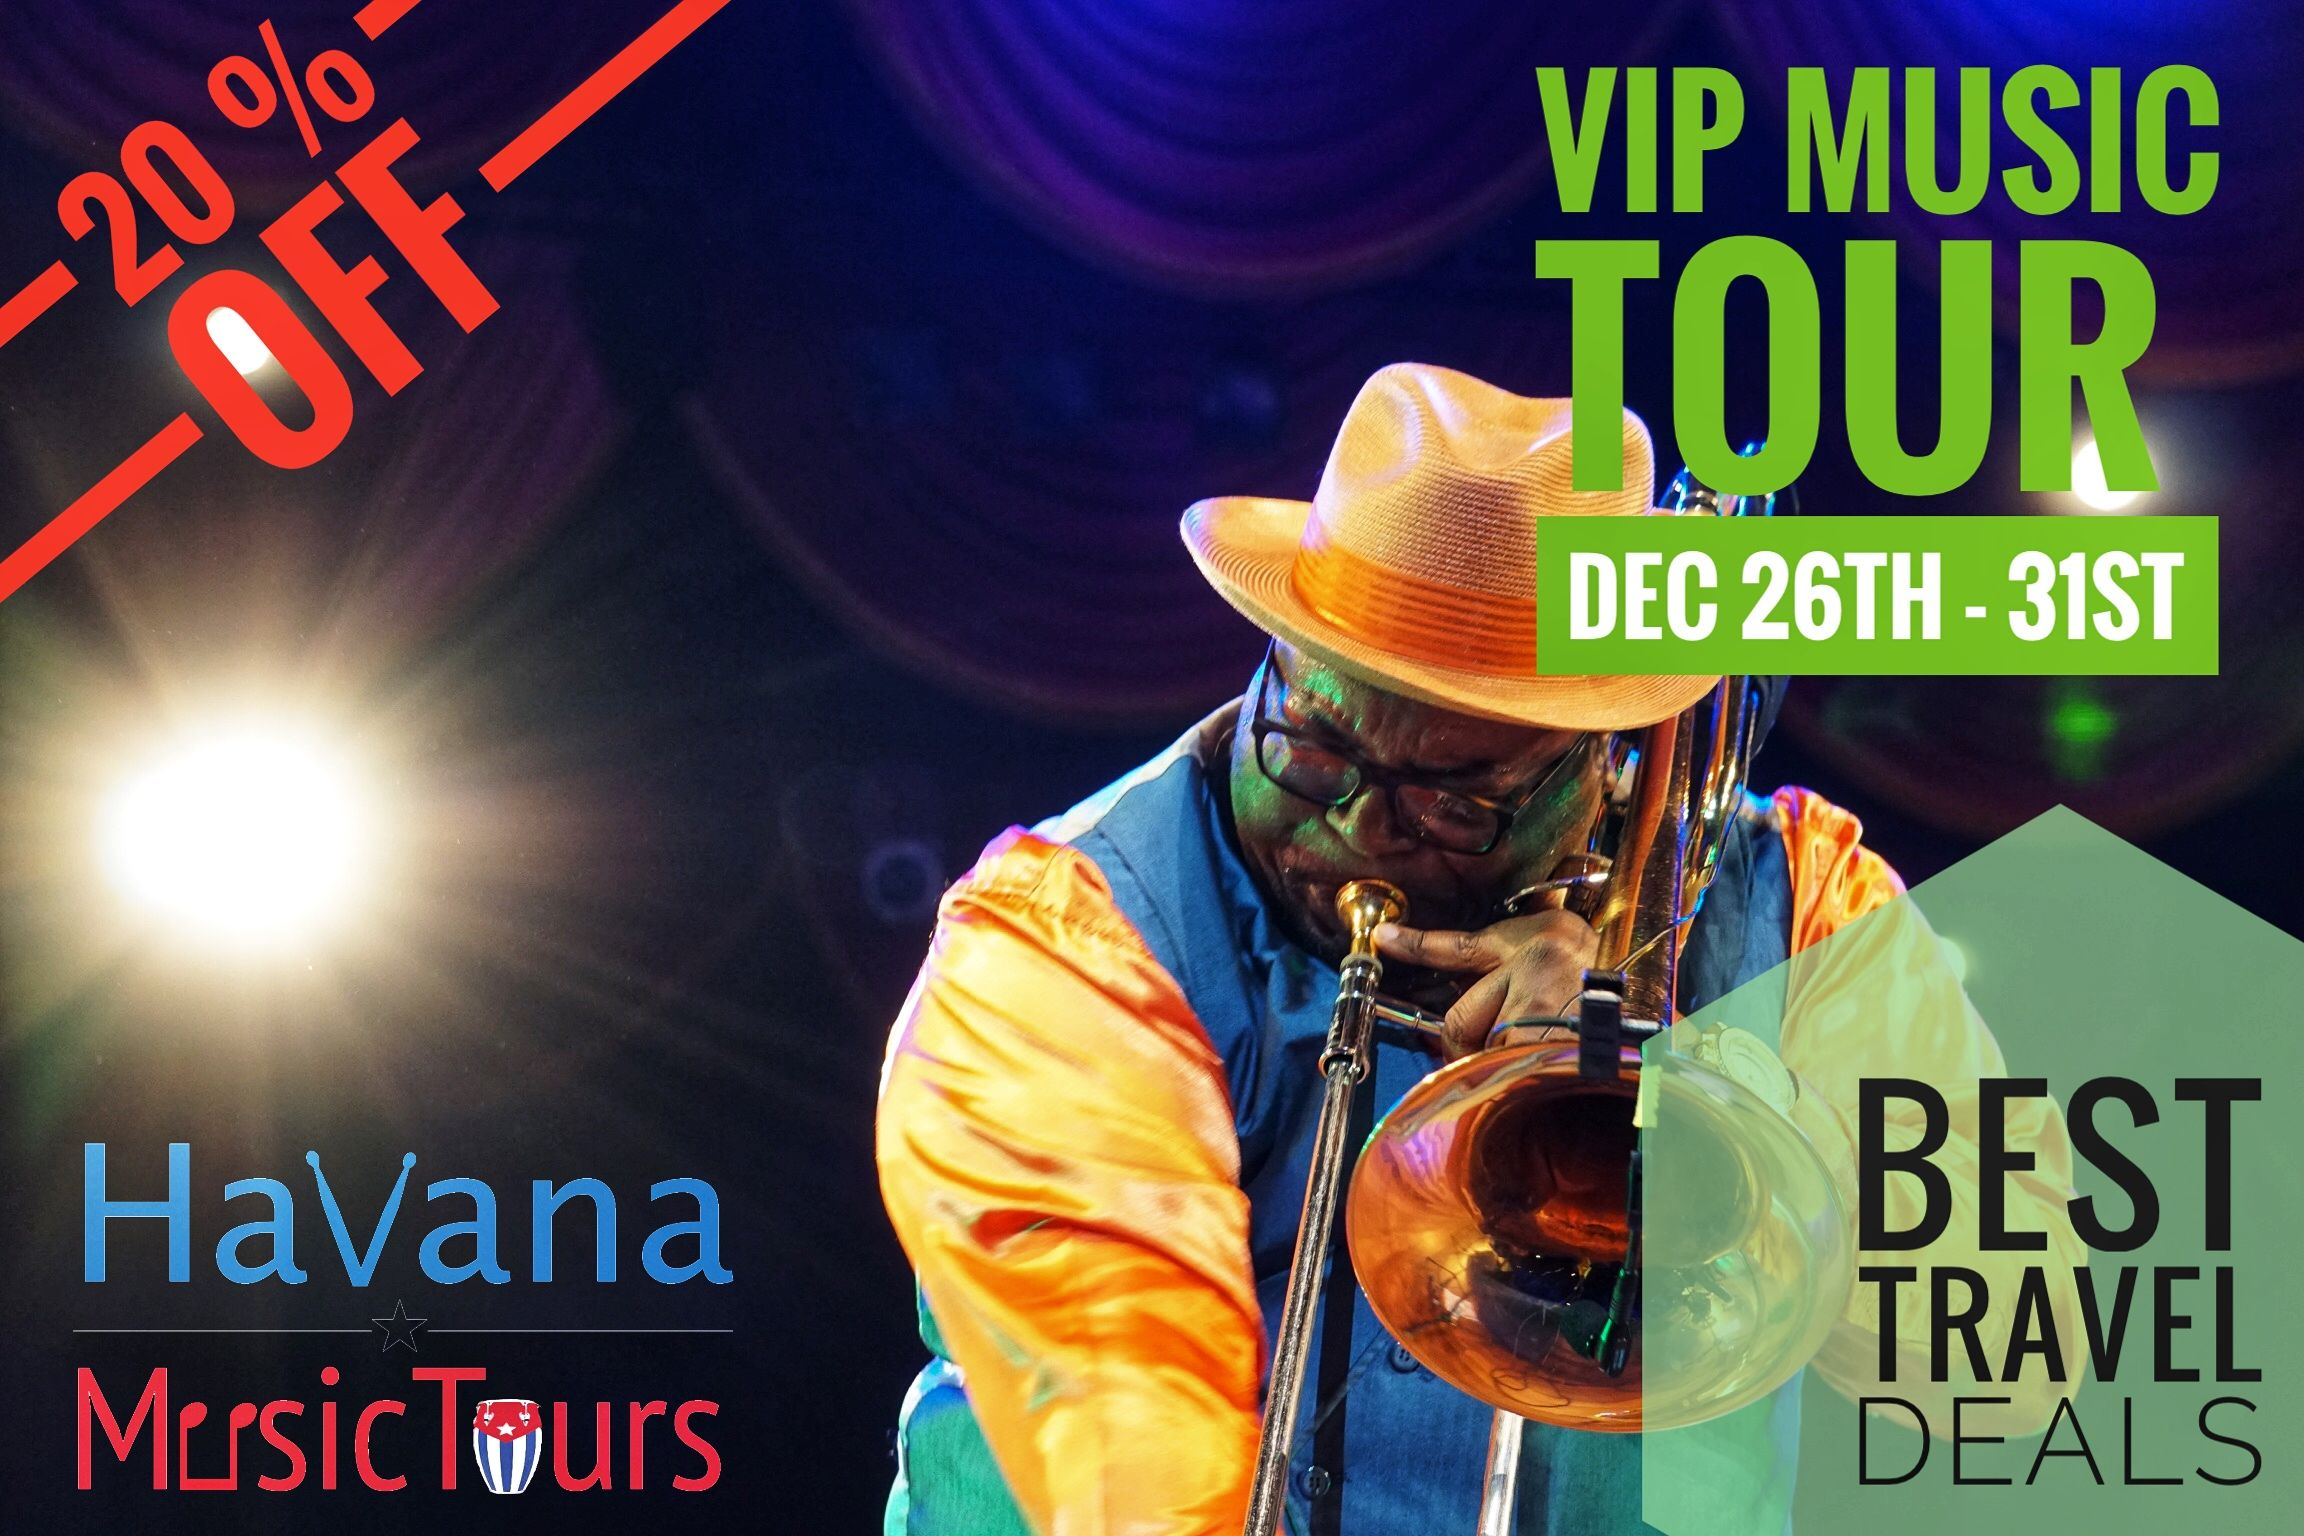 Cuba is a country full of music, check out our new cuba music tours offers! . . 👉musicalgetaways.com / havanamusictours.com   . #musicacubana🇨🇺 #musictours #blackfriday #cybermonday #greatdeals #traveldealsonline #travelscuba #goodtravels #goodoffersonline #musictravels #holidaysoptions #holidaytraveldeals #holidayspecial #holidayoffers